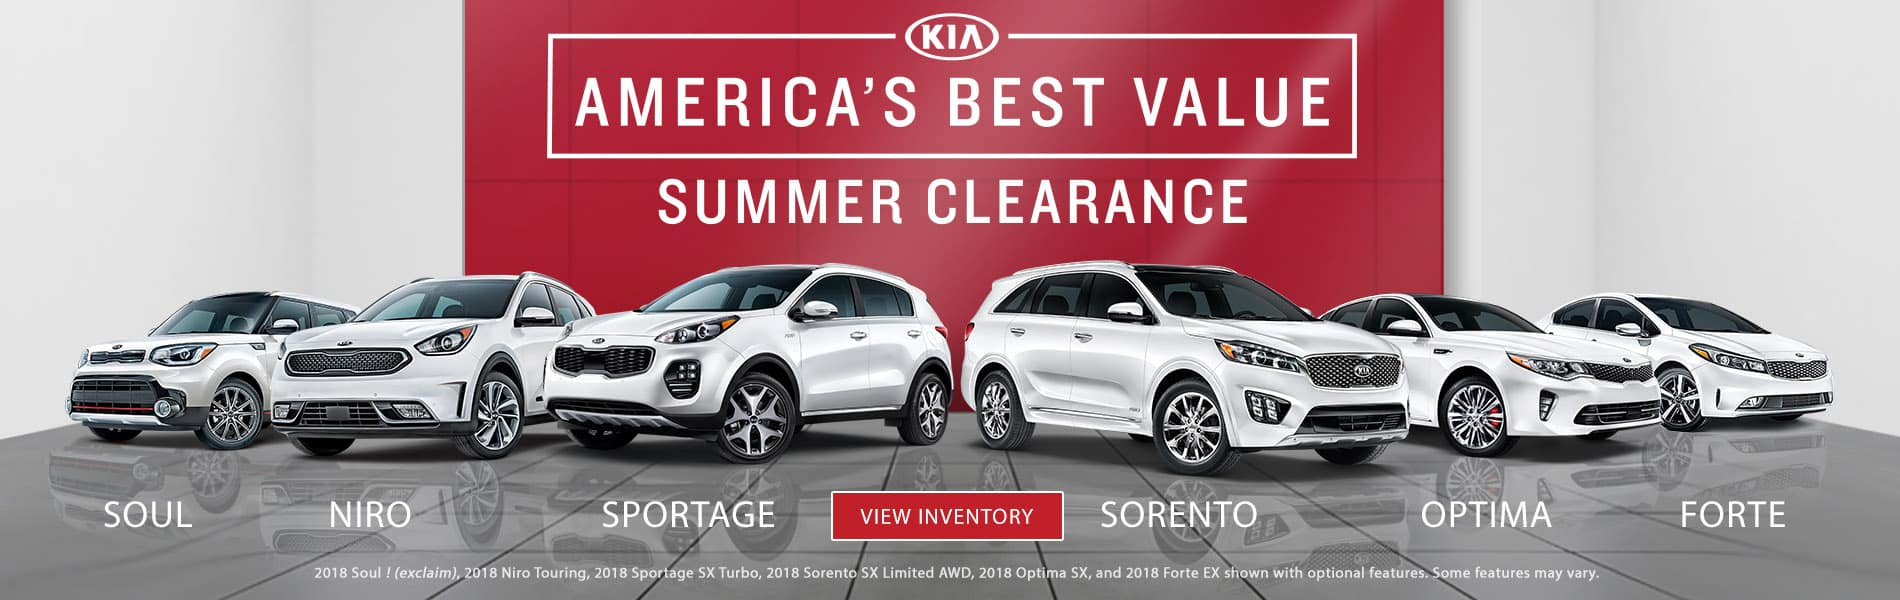 Kia America's Best Value Summer Clearance Event